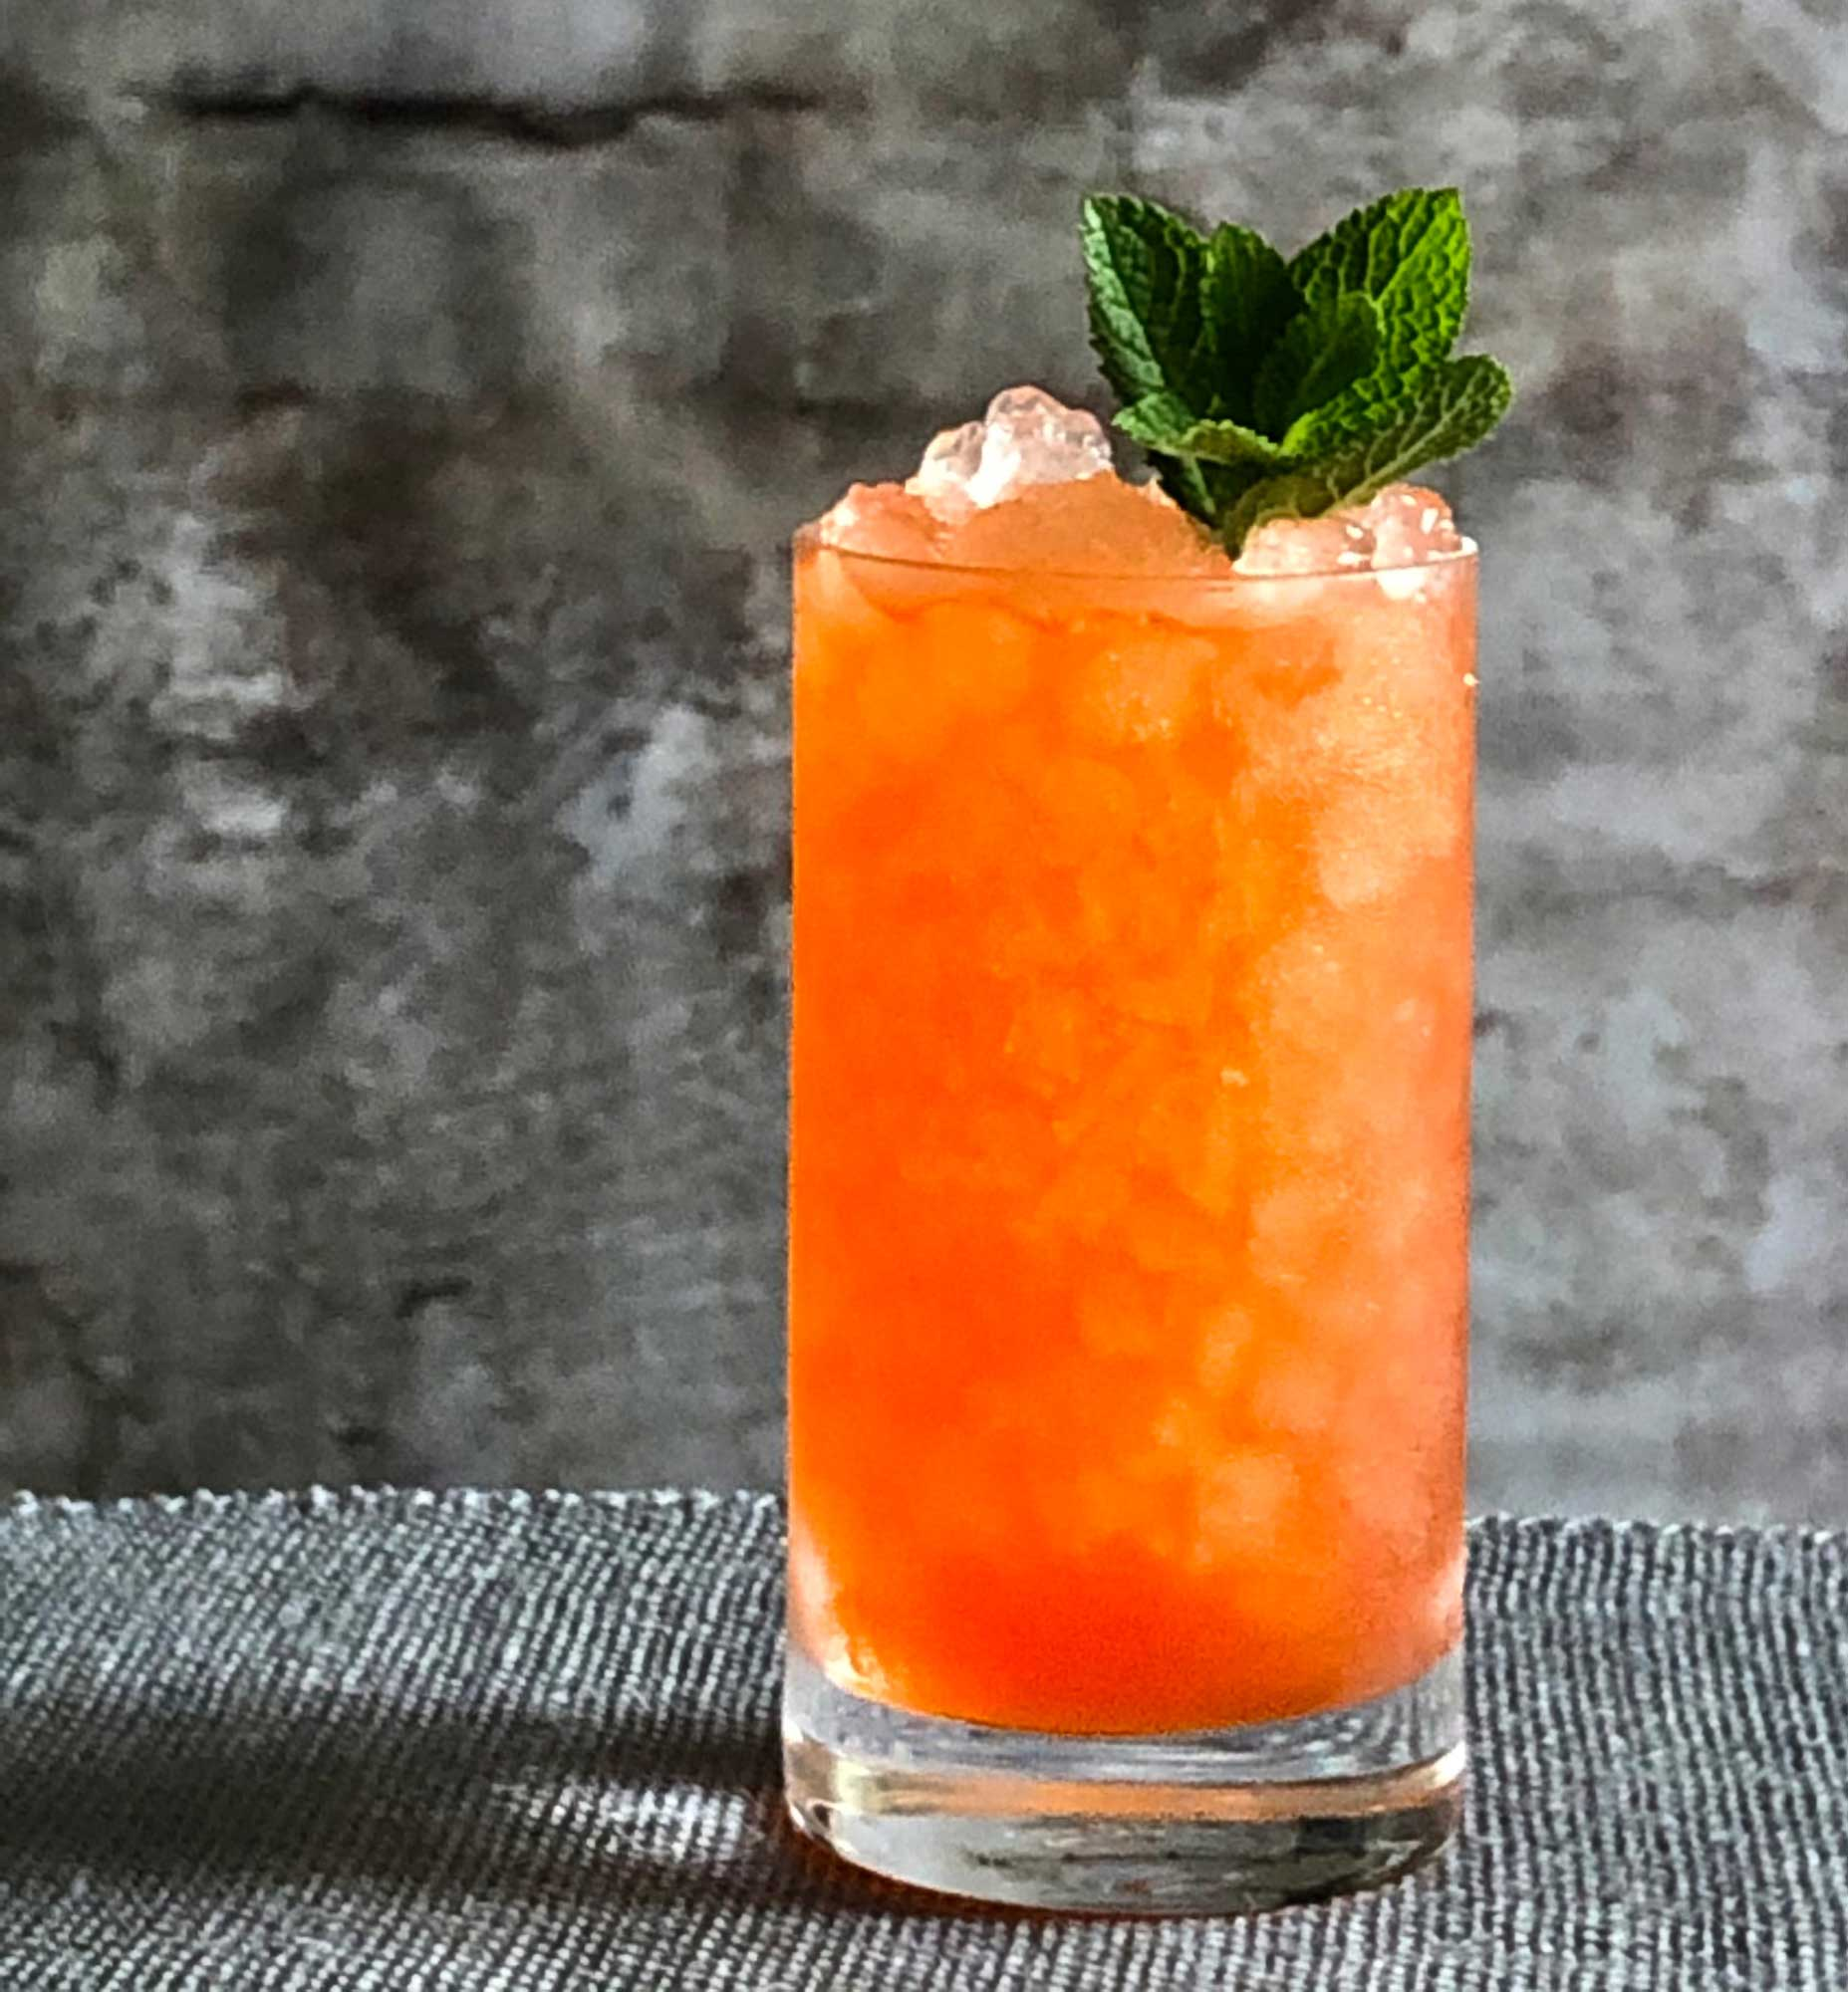 An example of the Cappelletti Smash, the mixed drink (smash), by Sean Sullivan, Straight Law, Boston, featuring Aperitivo Cappelletti; photo by Lee Edwards